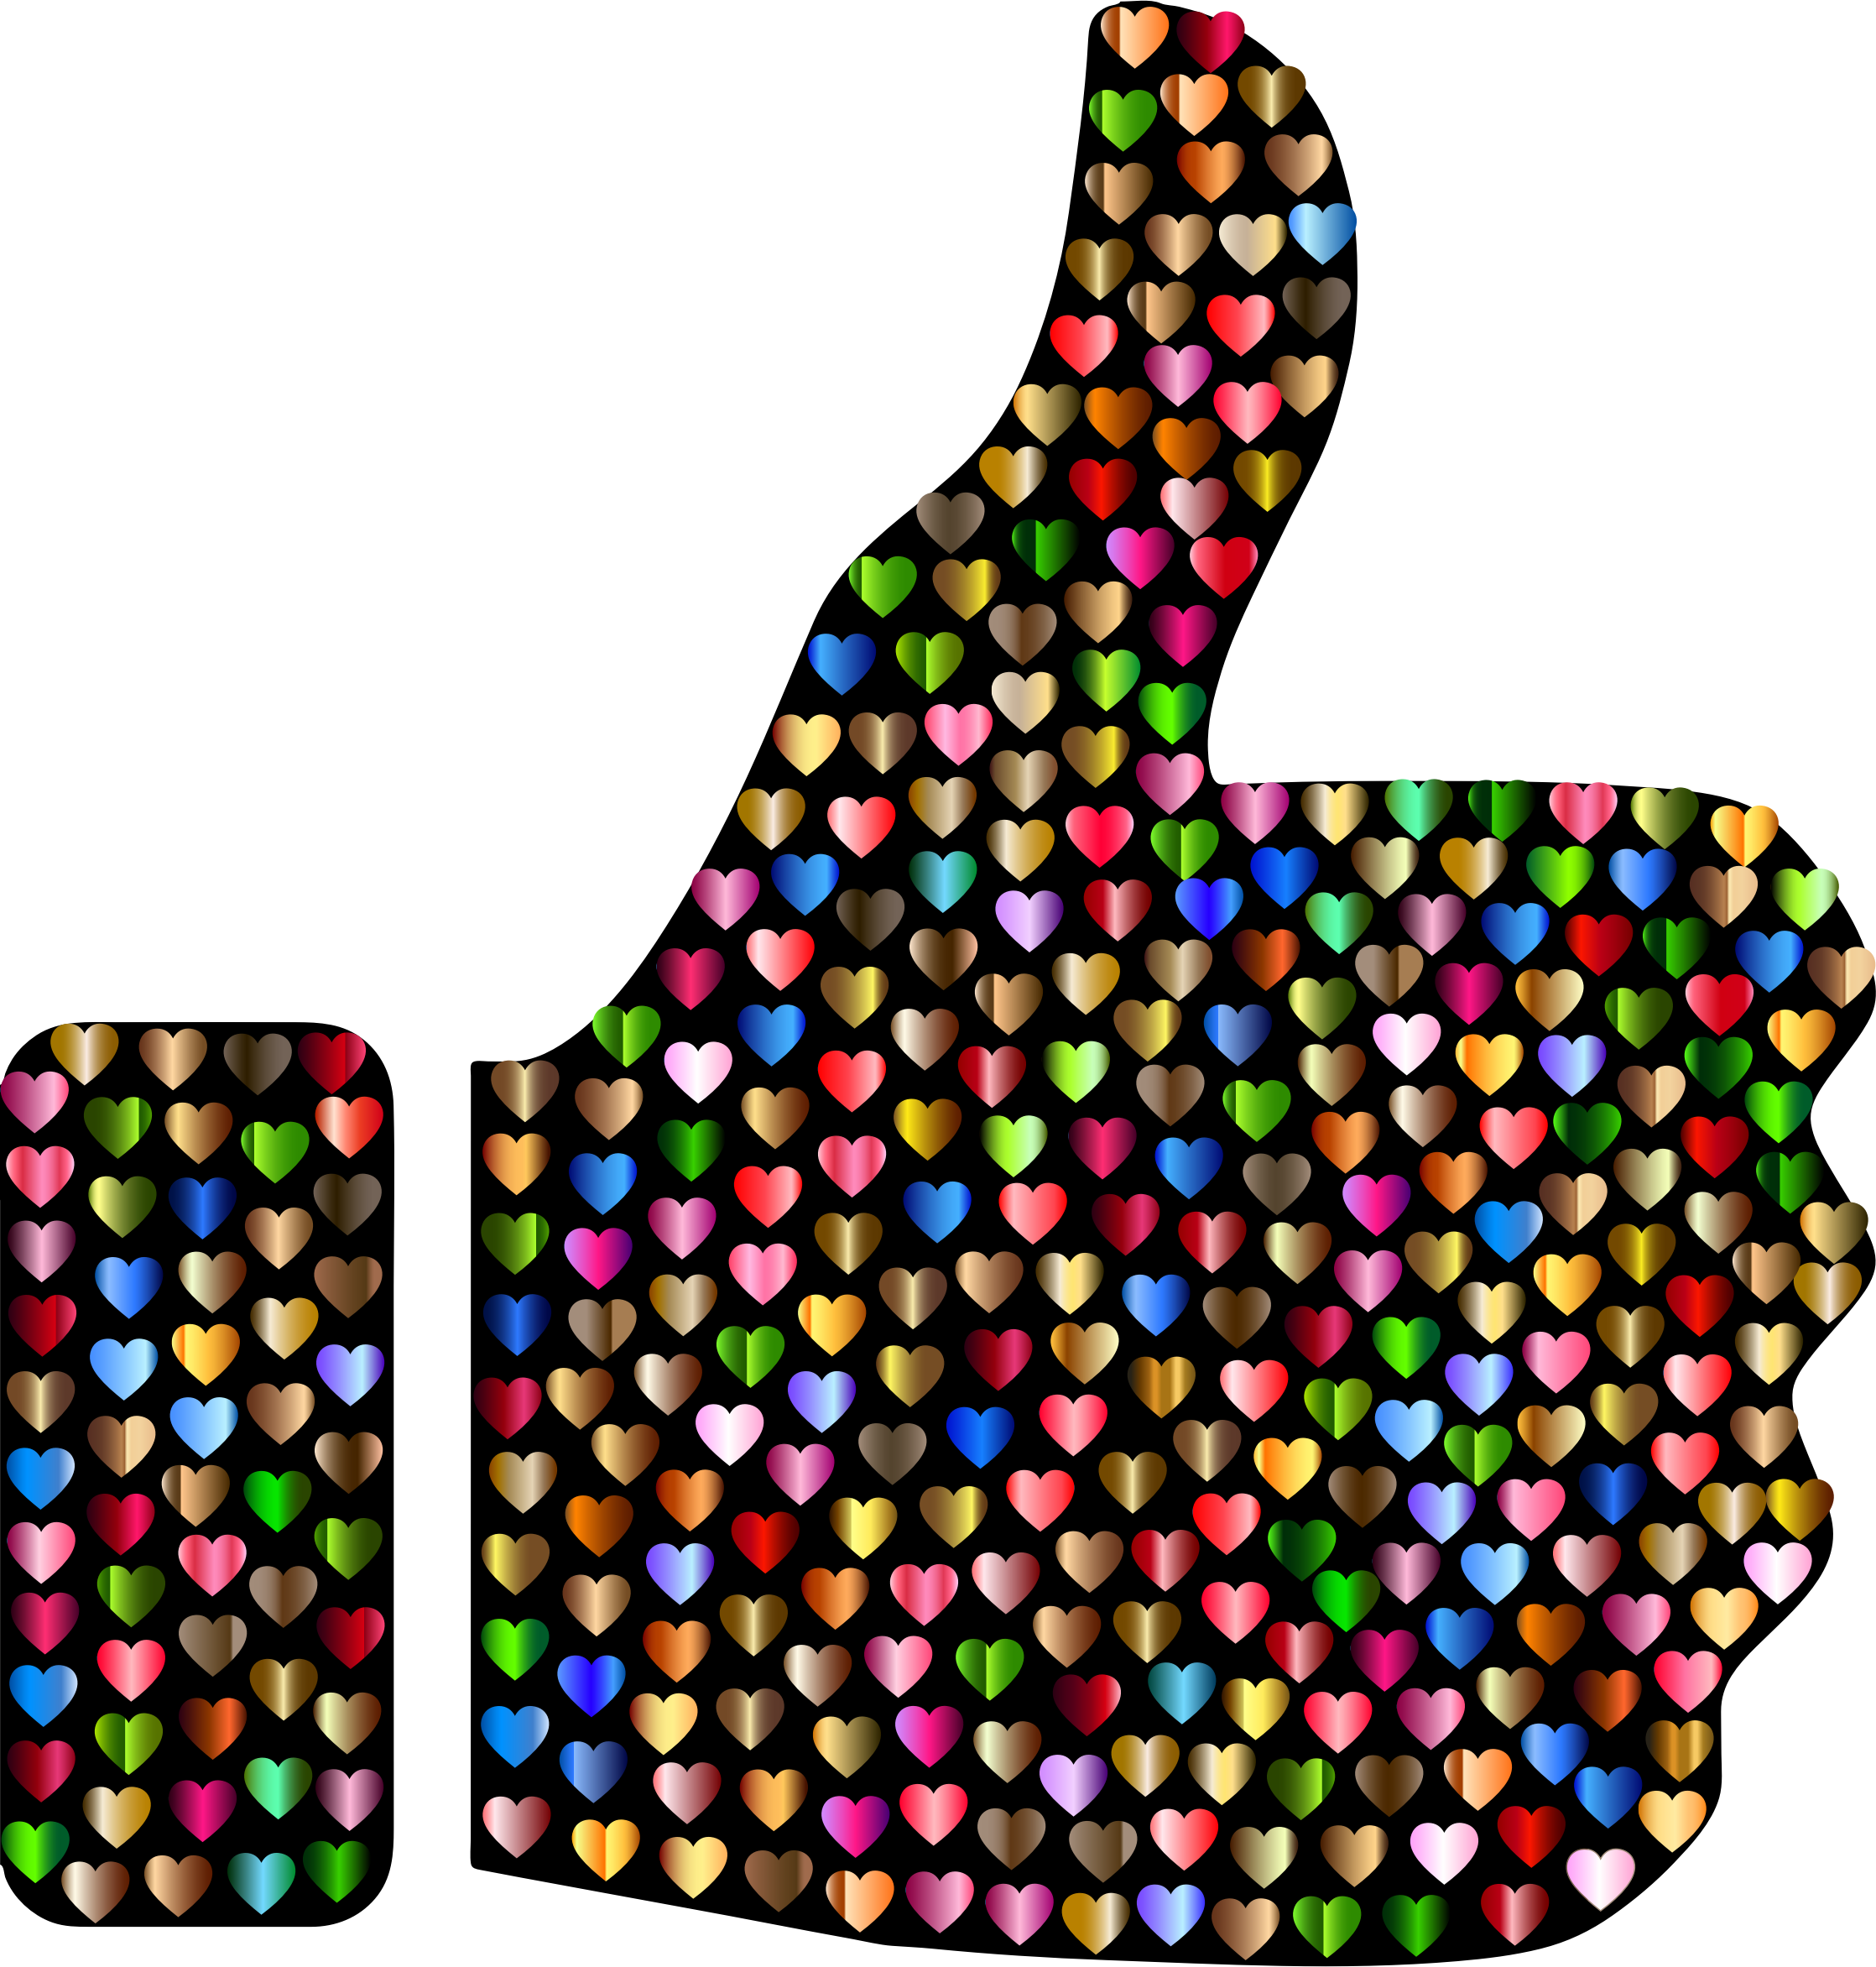 Prismatic Hearts Thumbs Up Silhouette 6 by GDJ